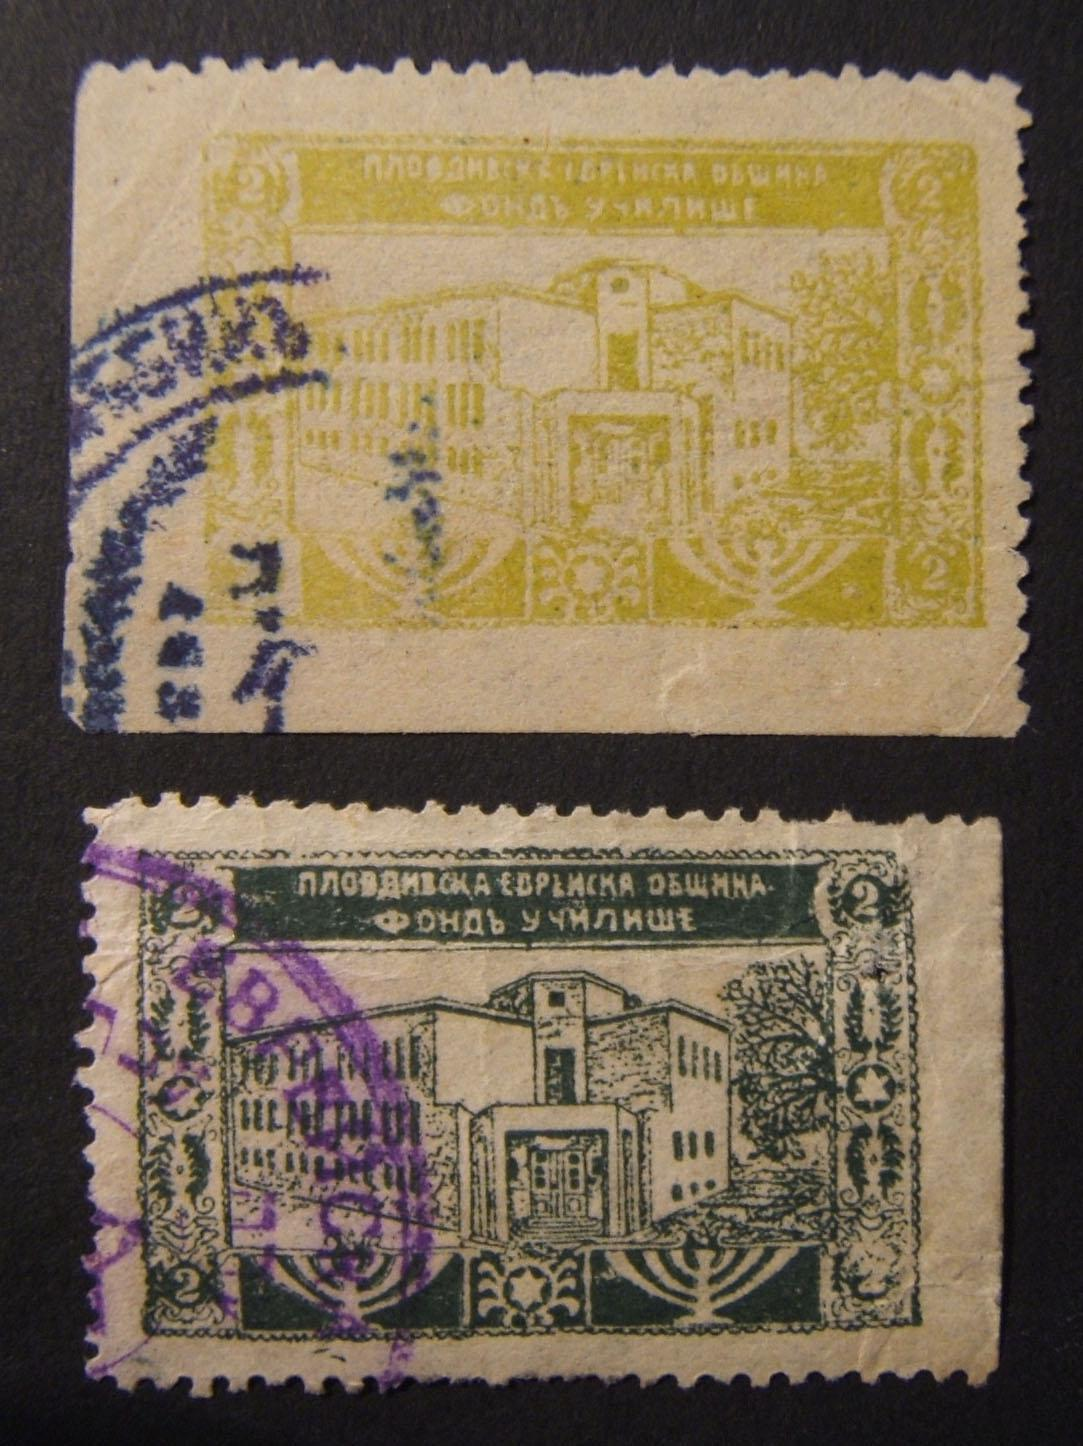 Bulgaria: 2x 2 stotinki(?) denominated Plovdiv Jewish Community fund stamps in yellow and green cancelled by the community's handstamp, circa. 1910-1920.